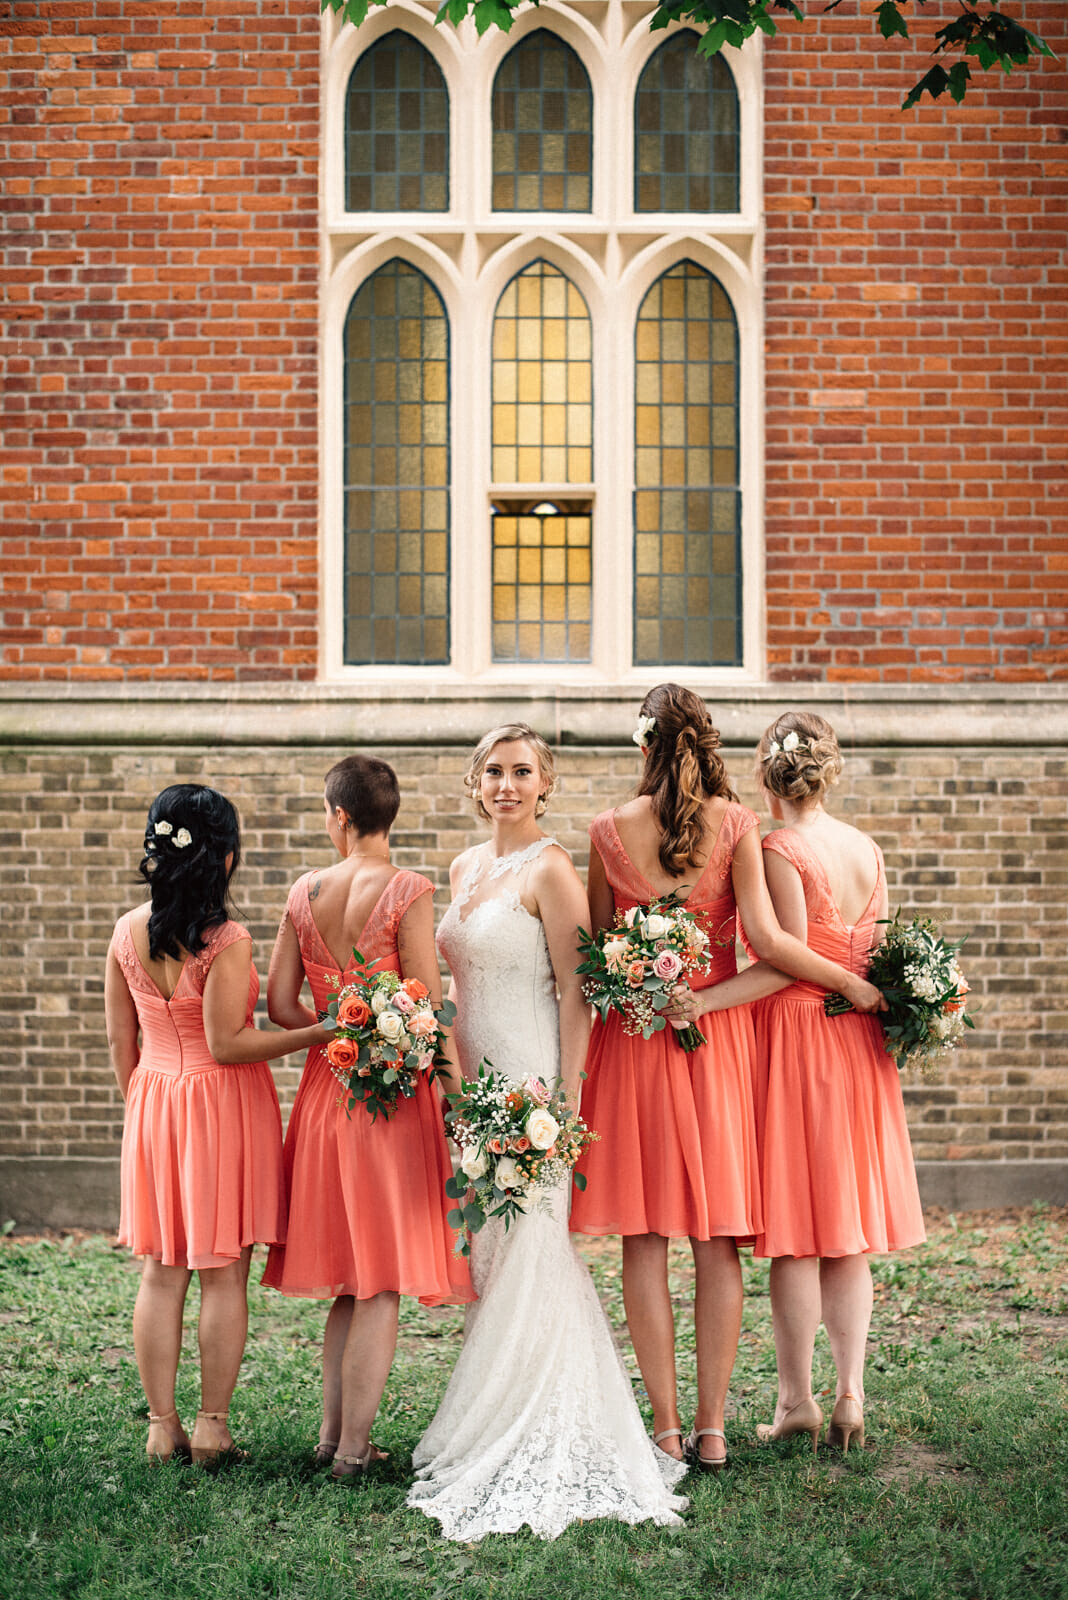 bridal party photos at enoch turner schoolhouse